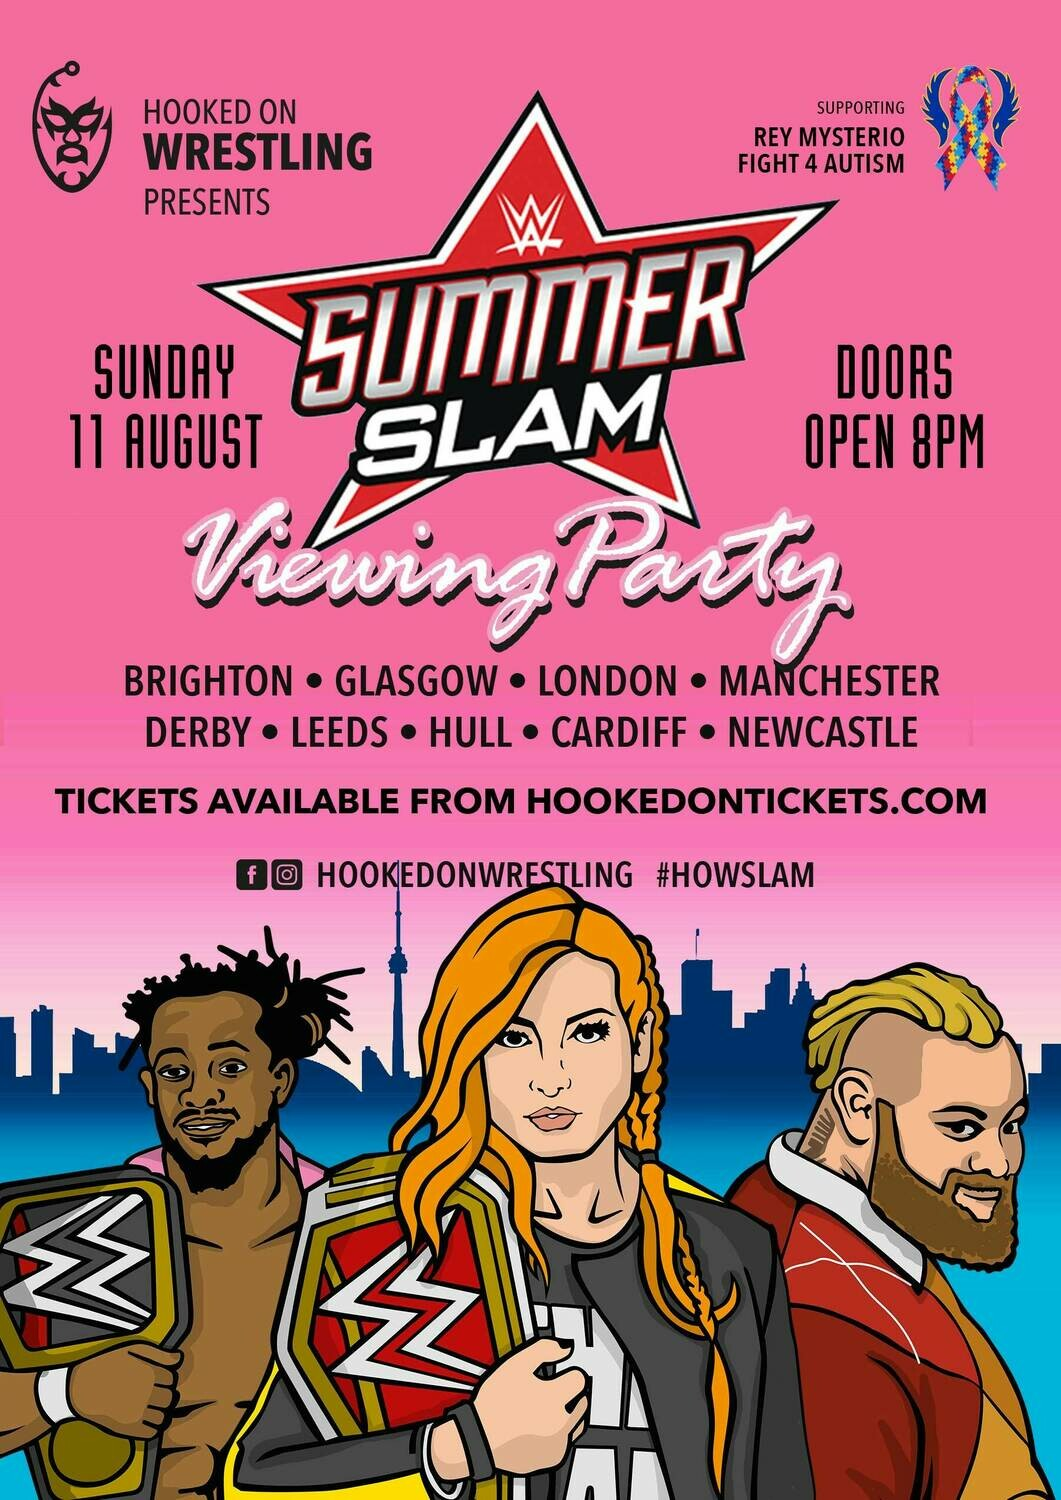 LONDON WWE SummerSlam 2019 Viewing Party